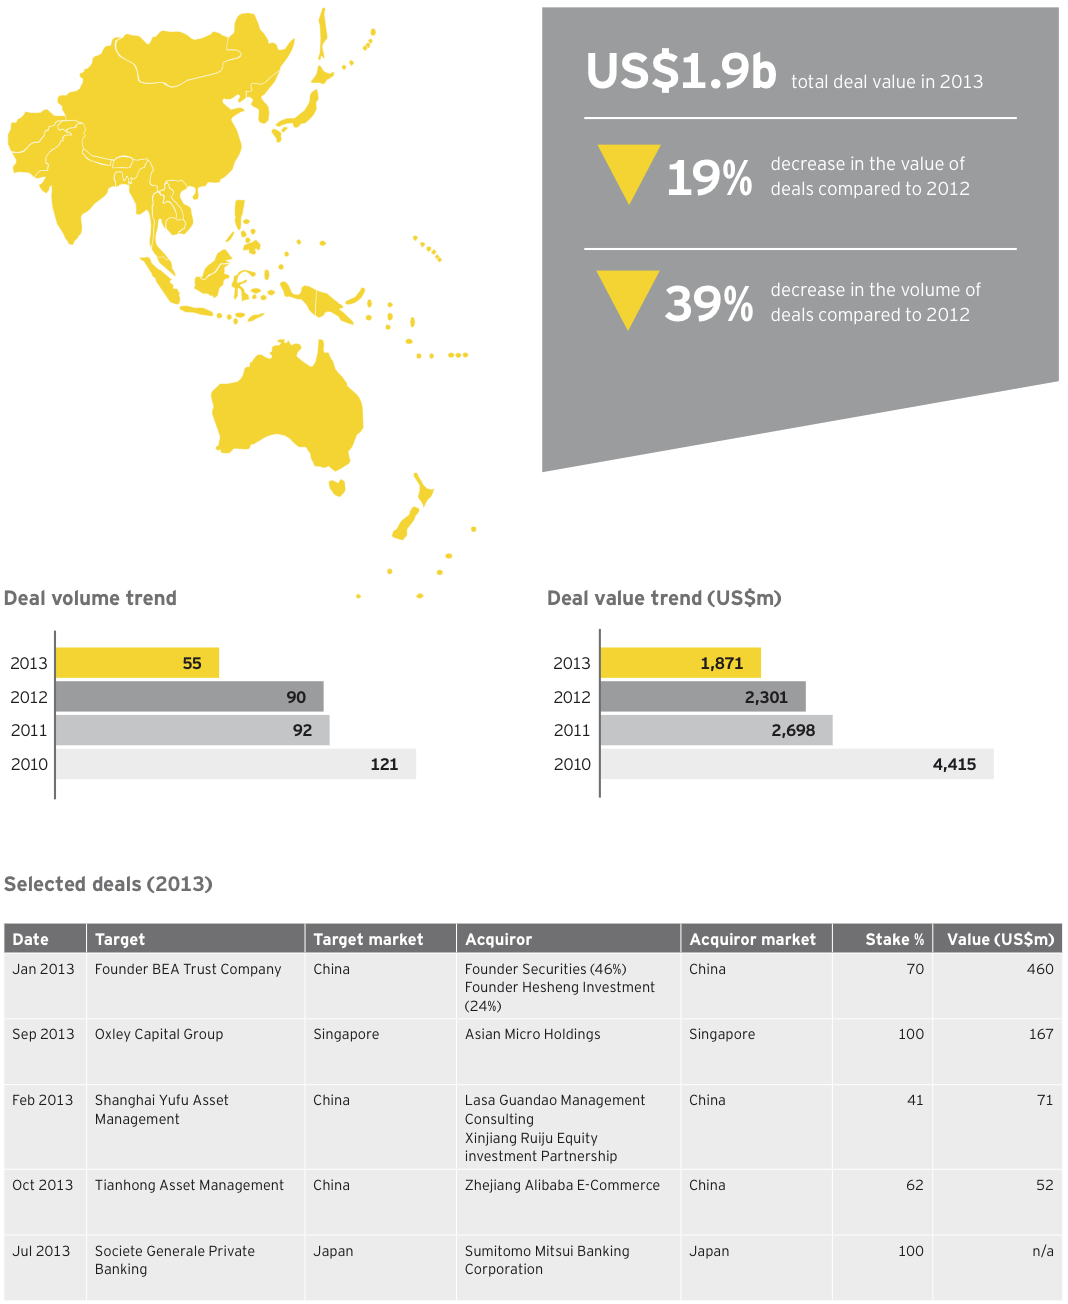 Figure 22 Wealth-asset management deals Asia-Pacific